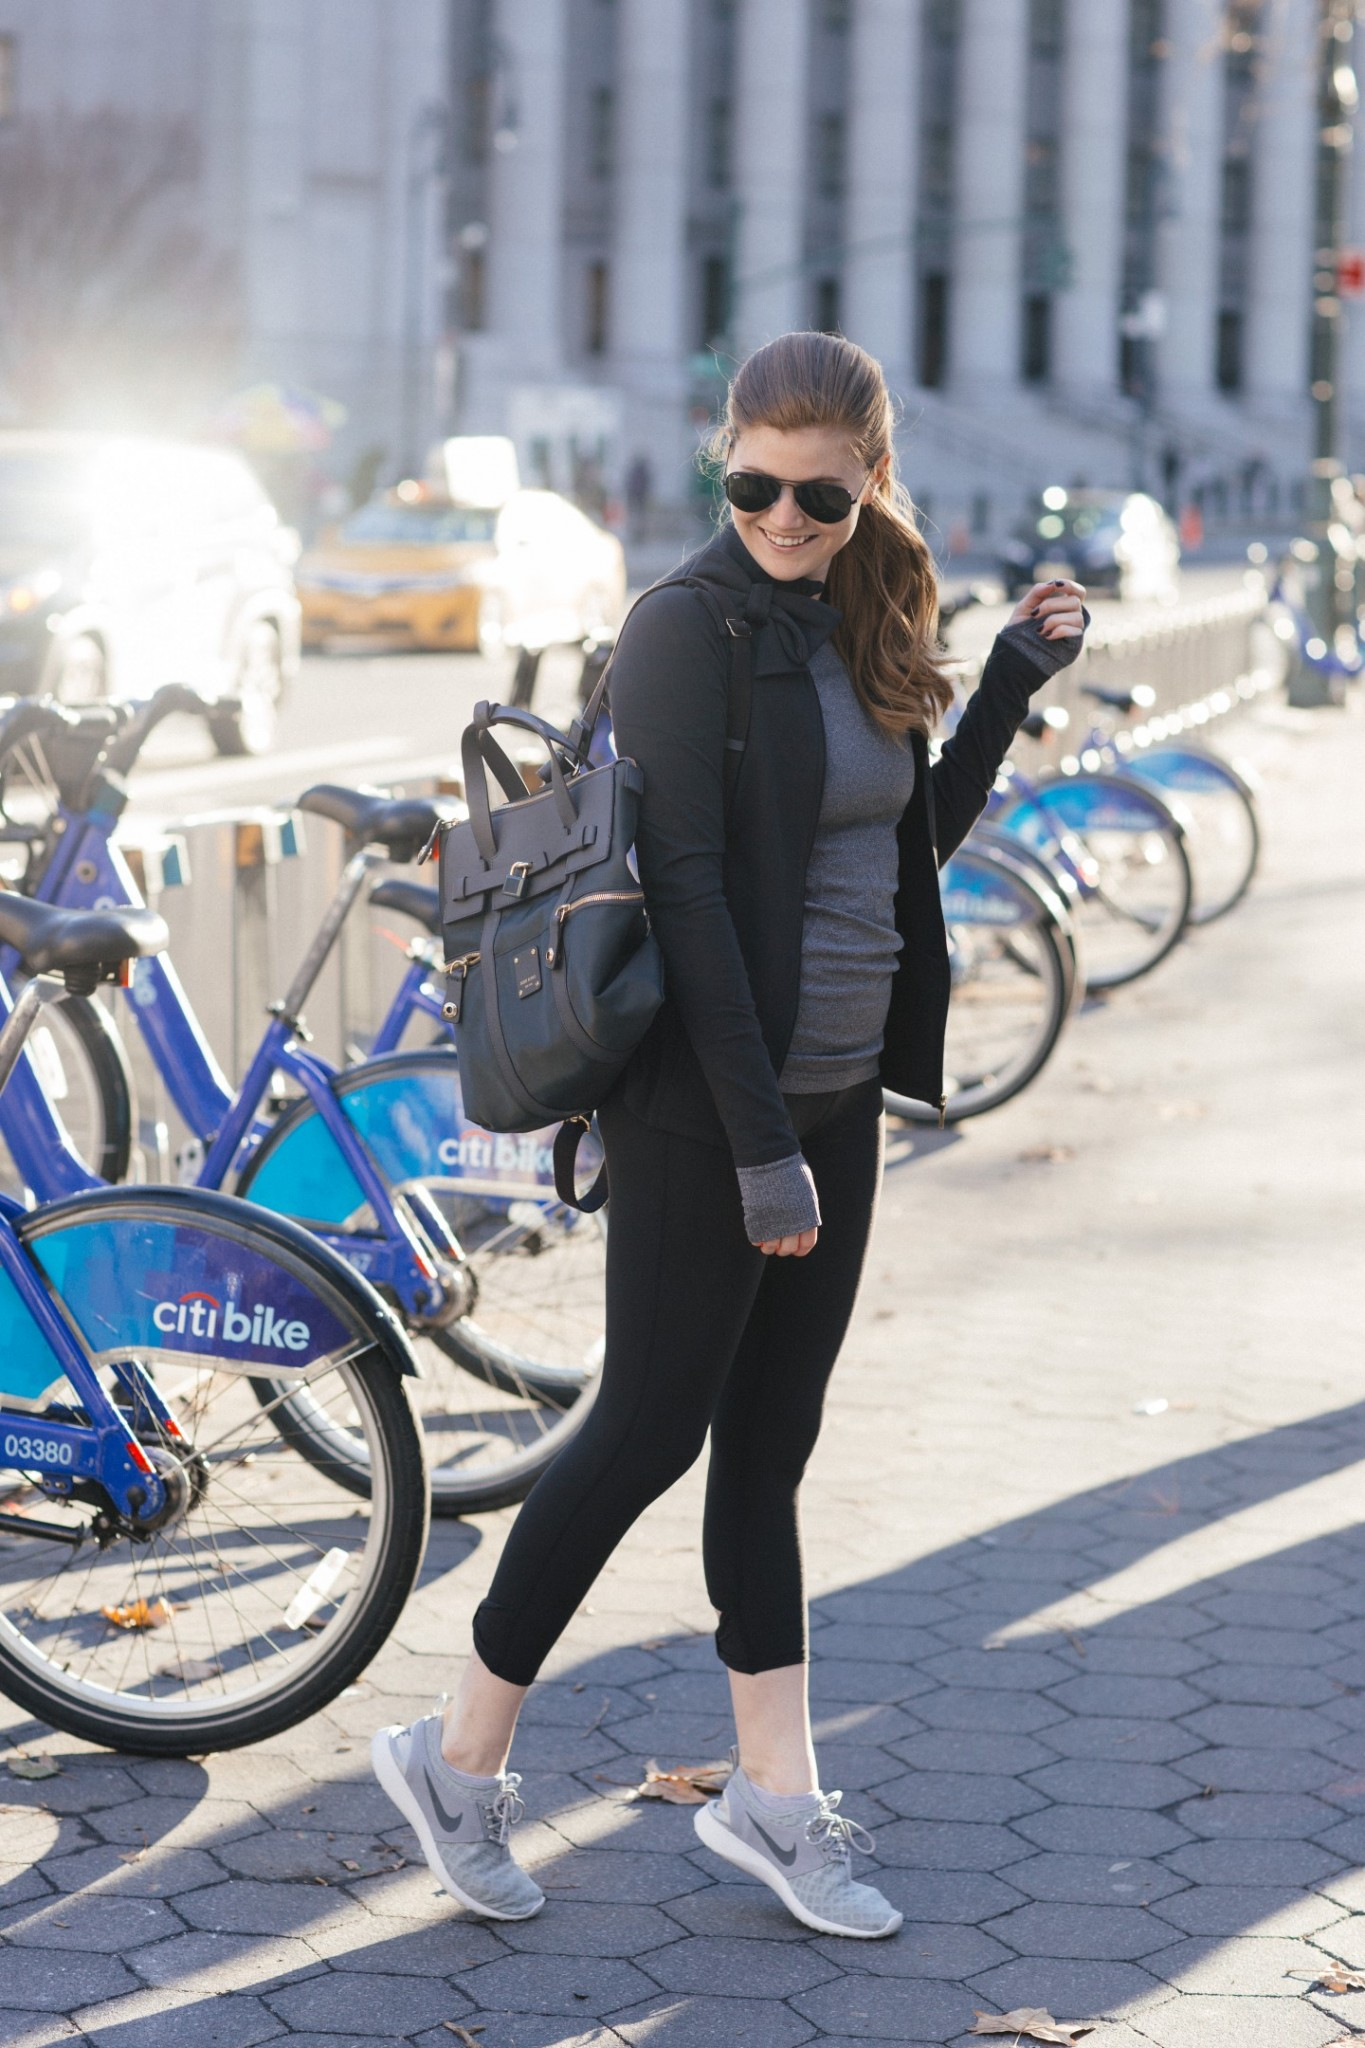 Lifestyle blogger Mollie Sheperdson shares an athleisure look with Kate Spade x Beyond Yoga